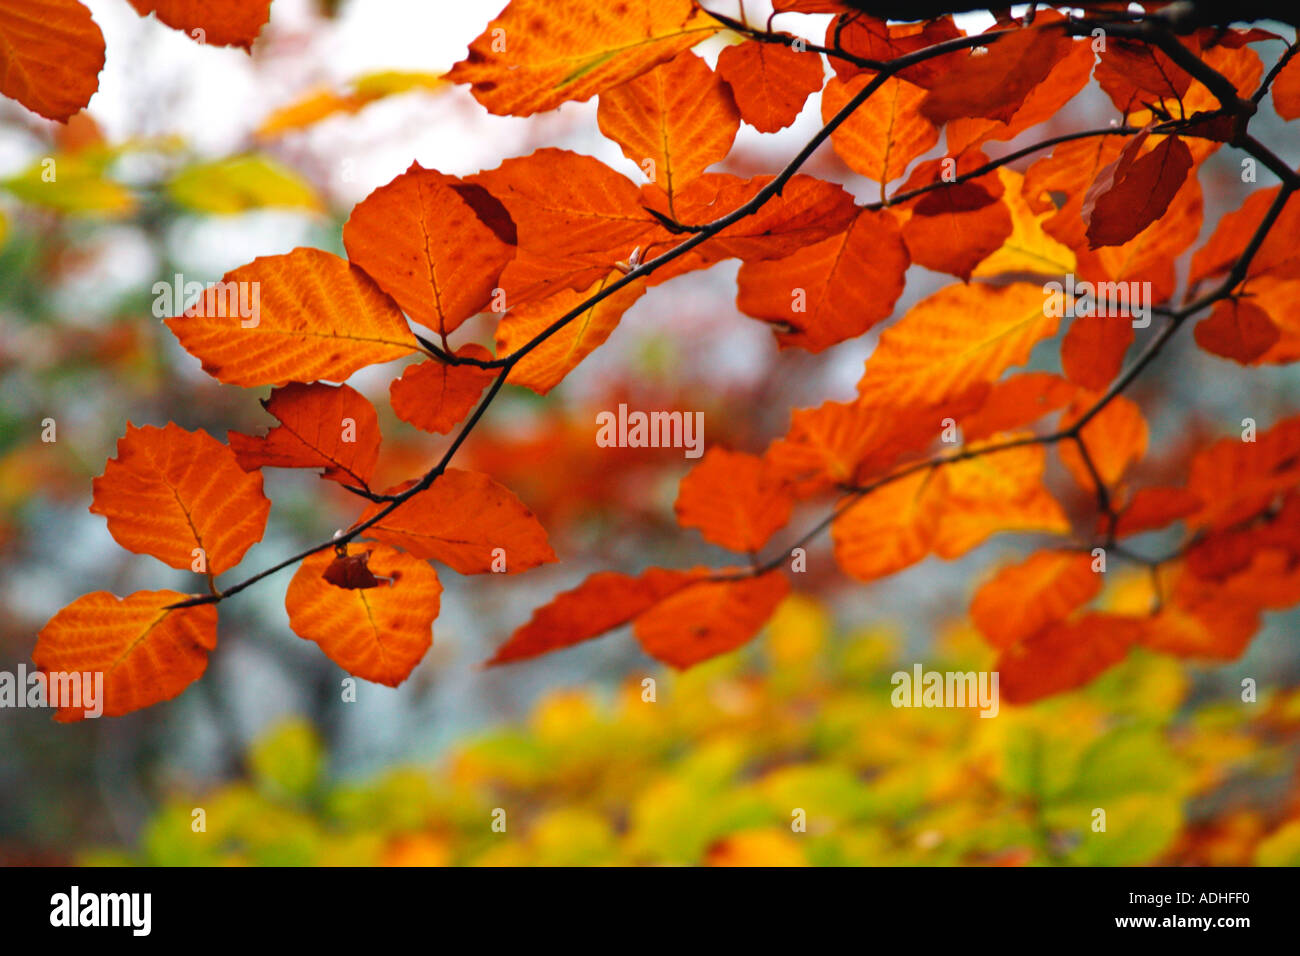 Live Wallpaper Fall Leaves Autumn Colours Fall Colors In Beech Tree Leaves Quot Fagus